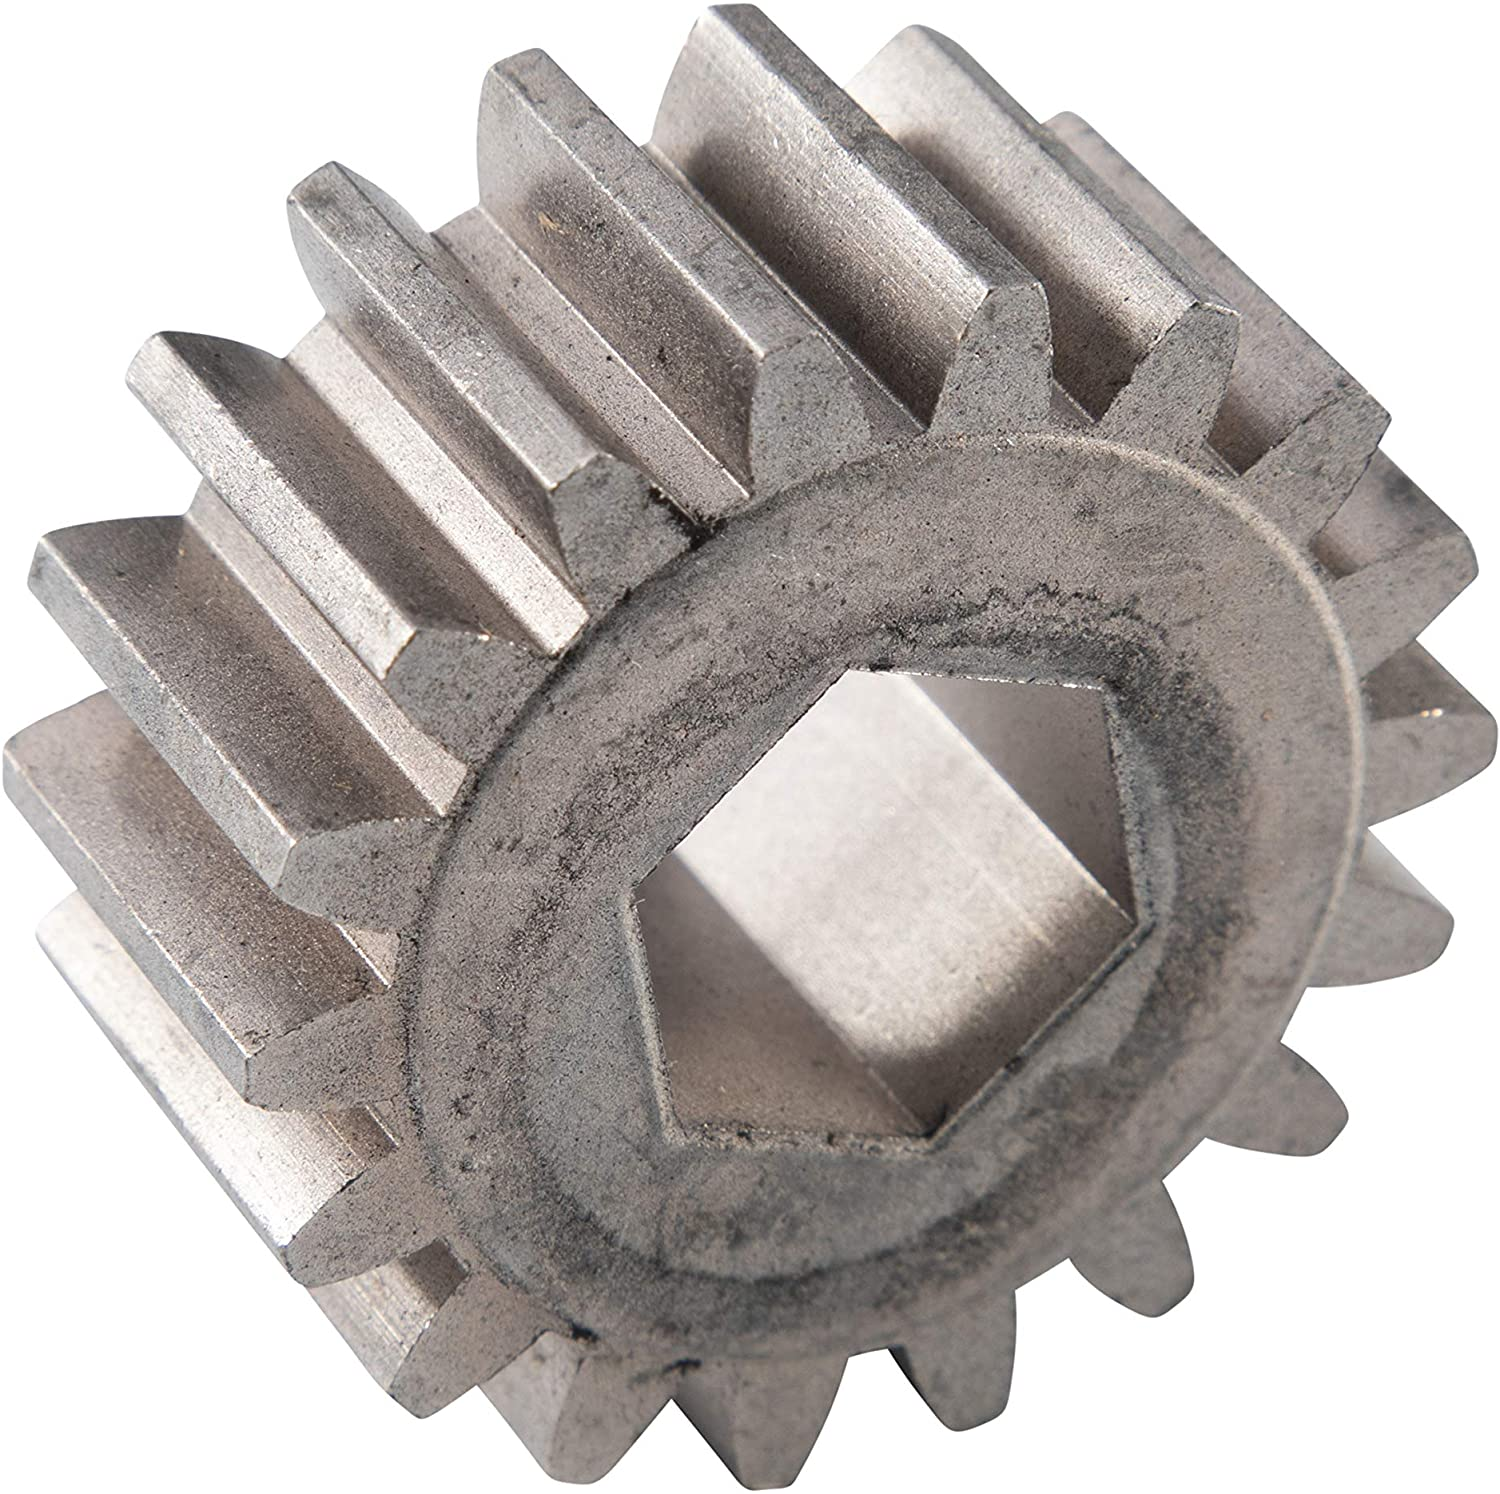 Lippert Components 122739 18 Tooth Spur Gear (12 DP/14.5 PA),1 Pack